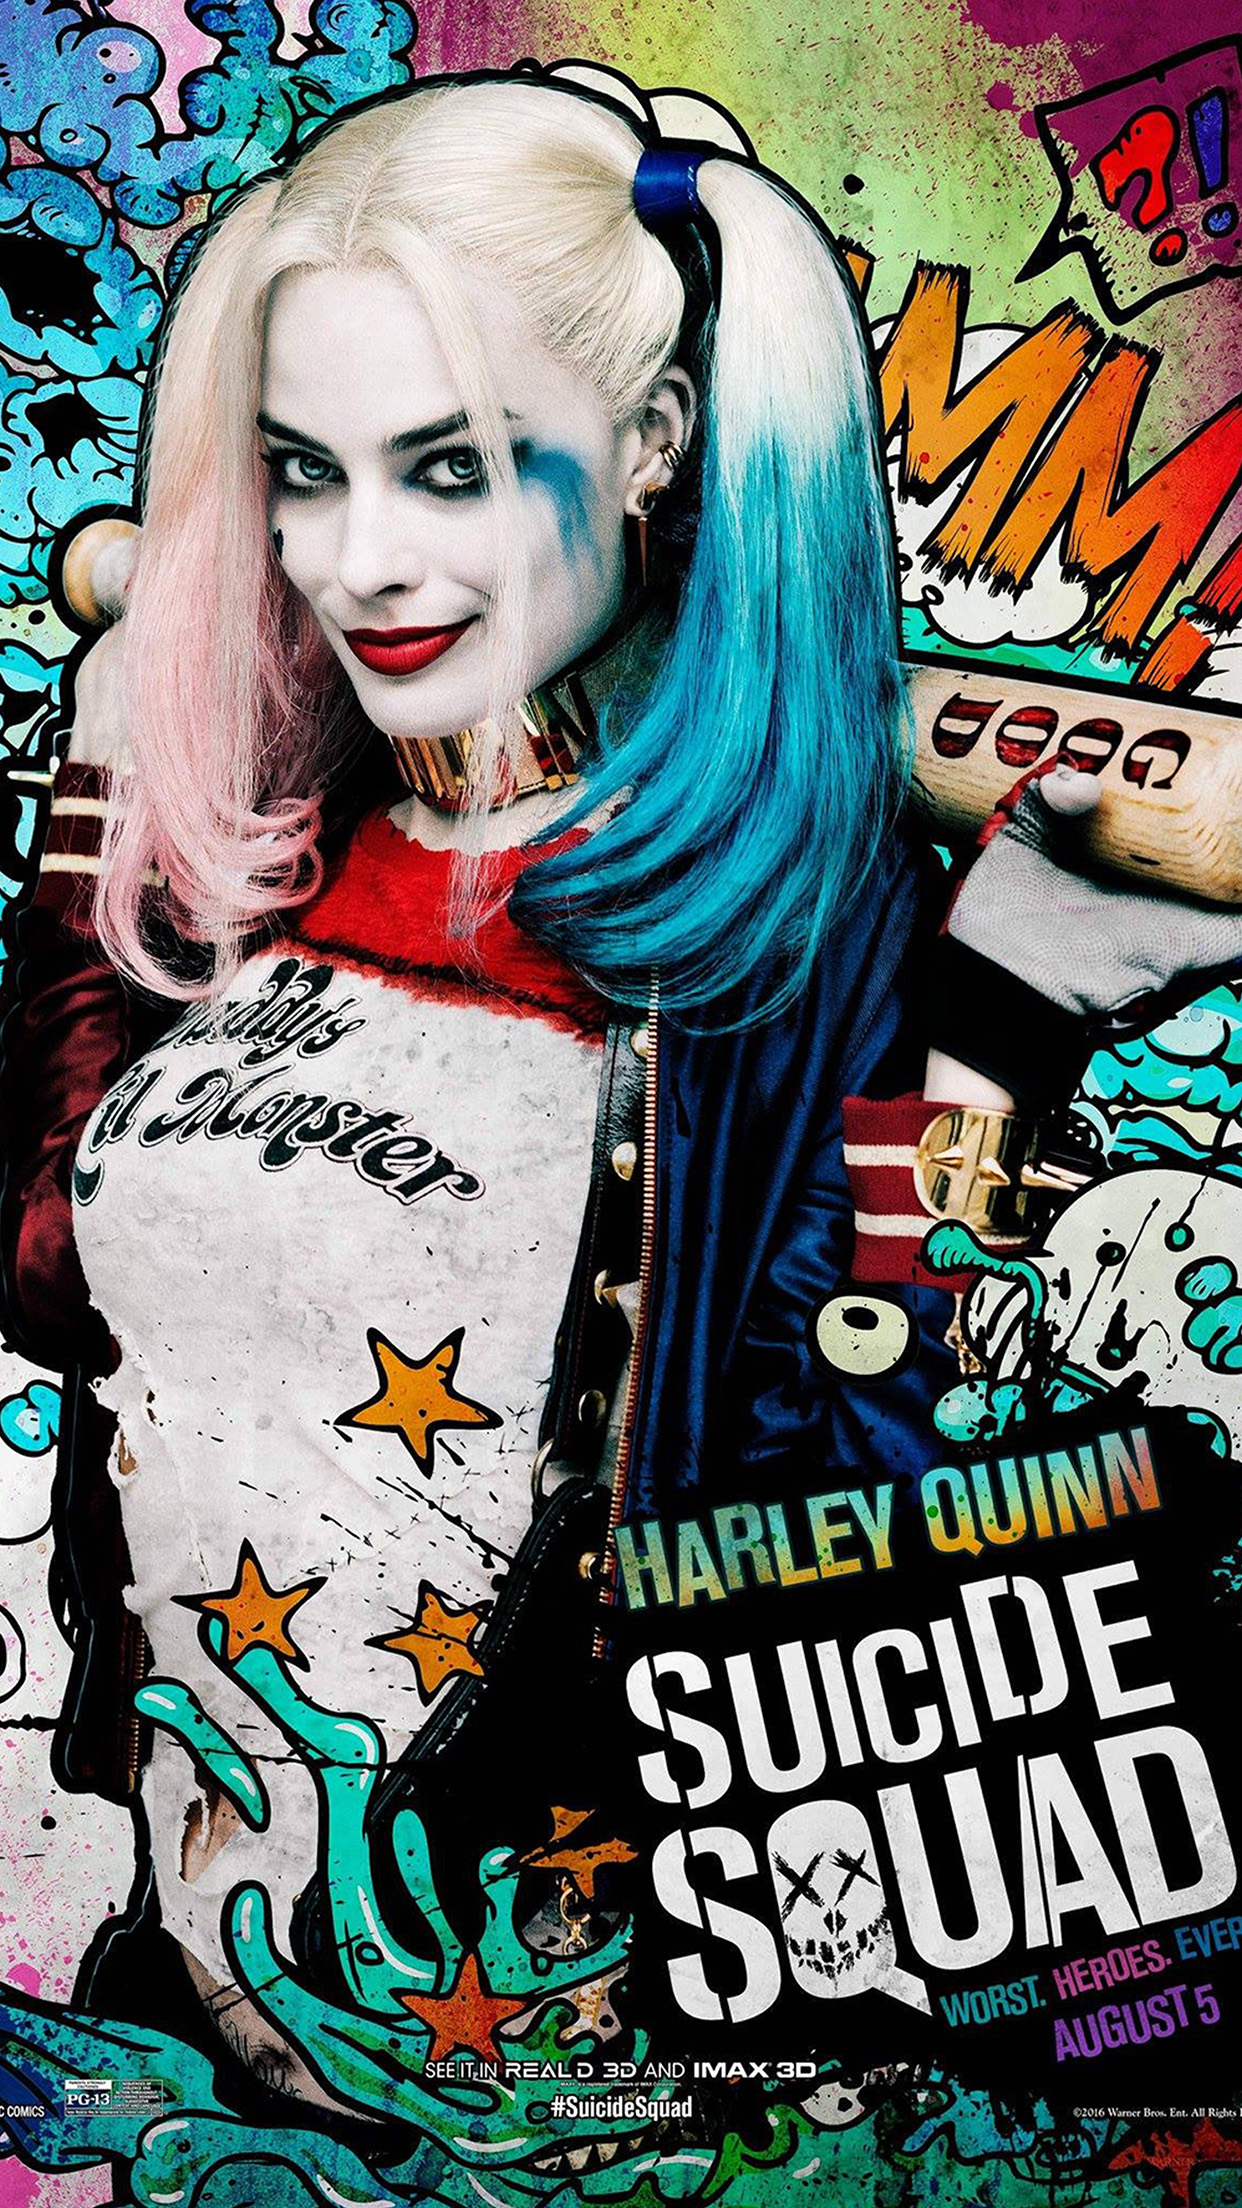 Harley Quinn Hd Iphone Wallpaper Papers Co Iphone Wallpaper As43 Suicide Squad Film